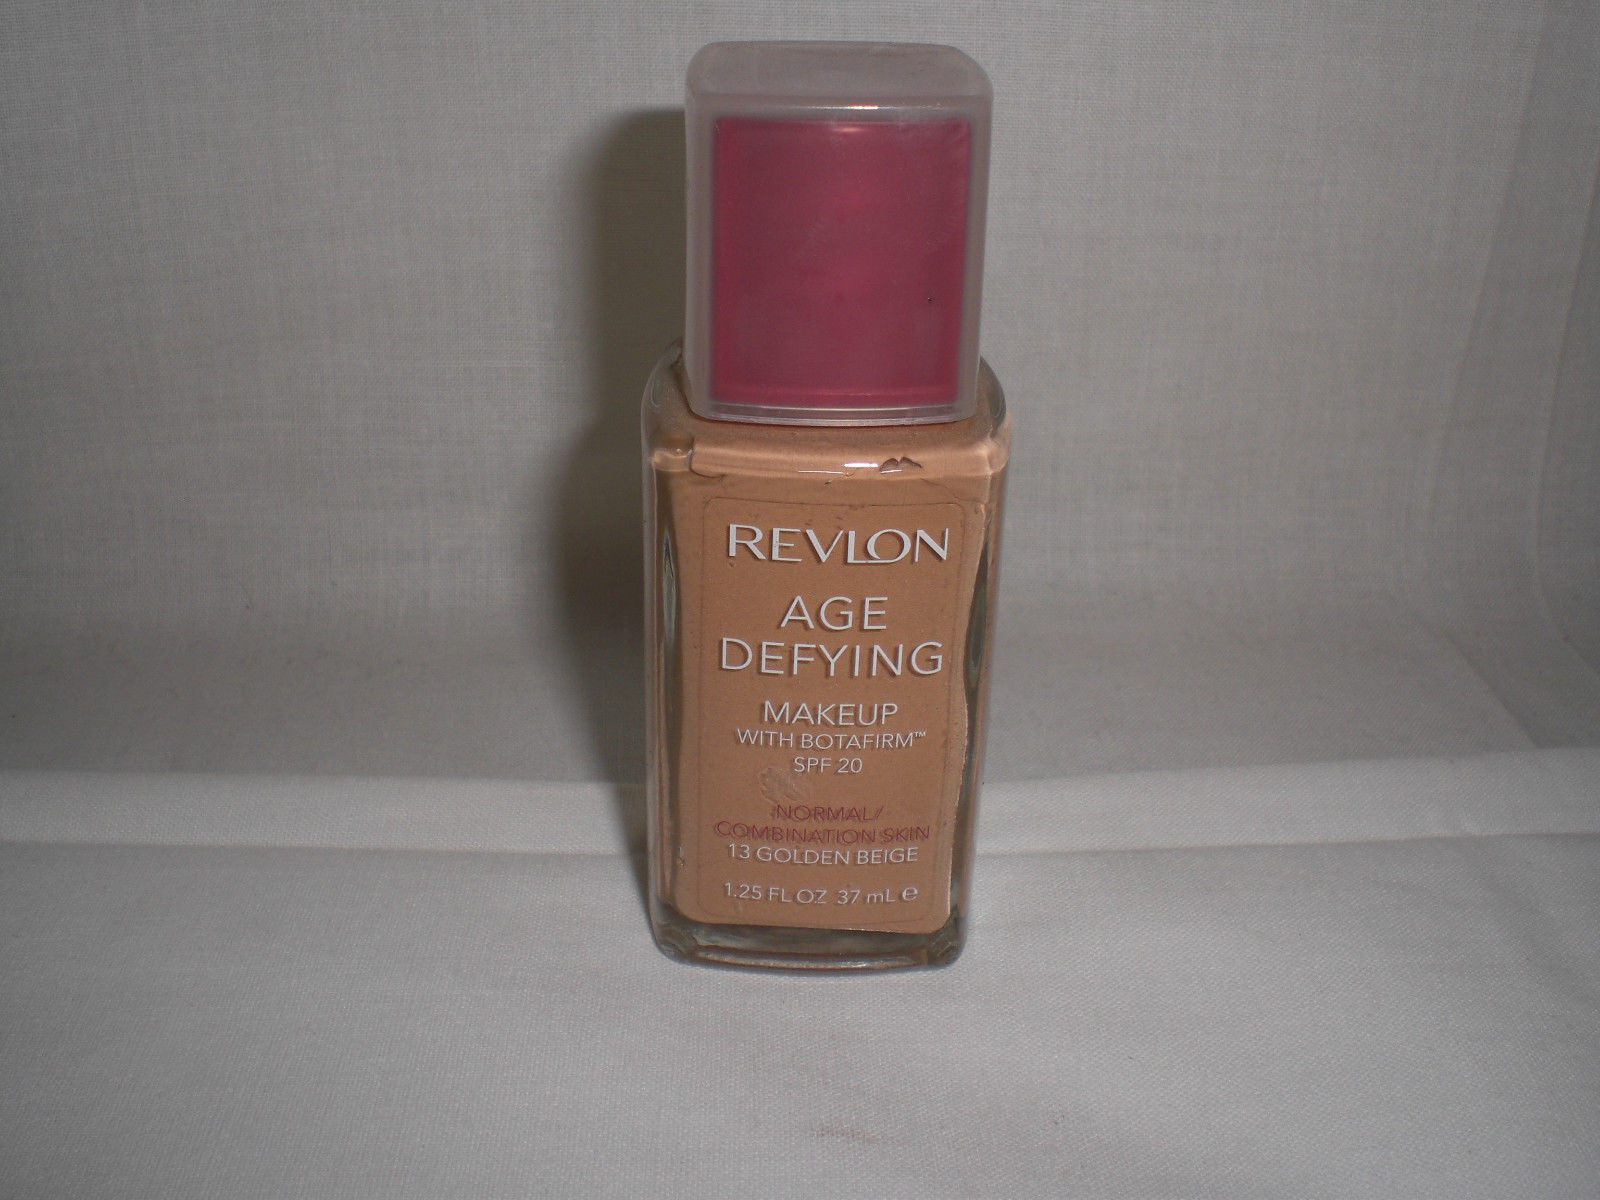 Revlon Age Defying Spf 20 Skin Liquid Foundation Makeup 13 Golden Beige 1 25 Oz